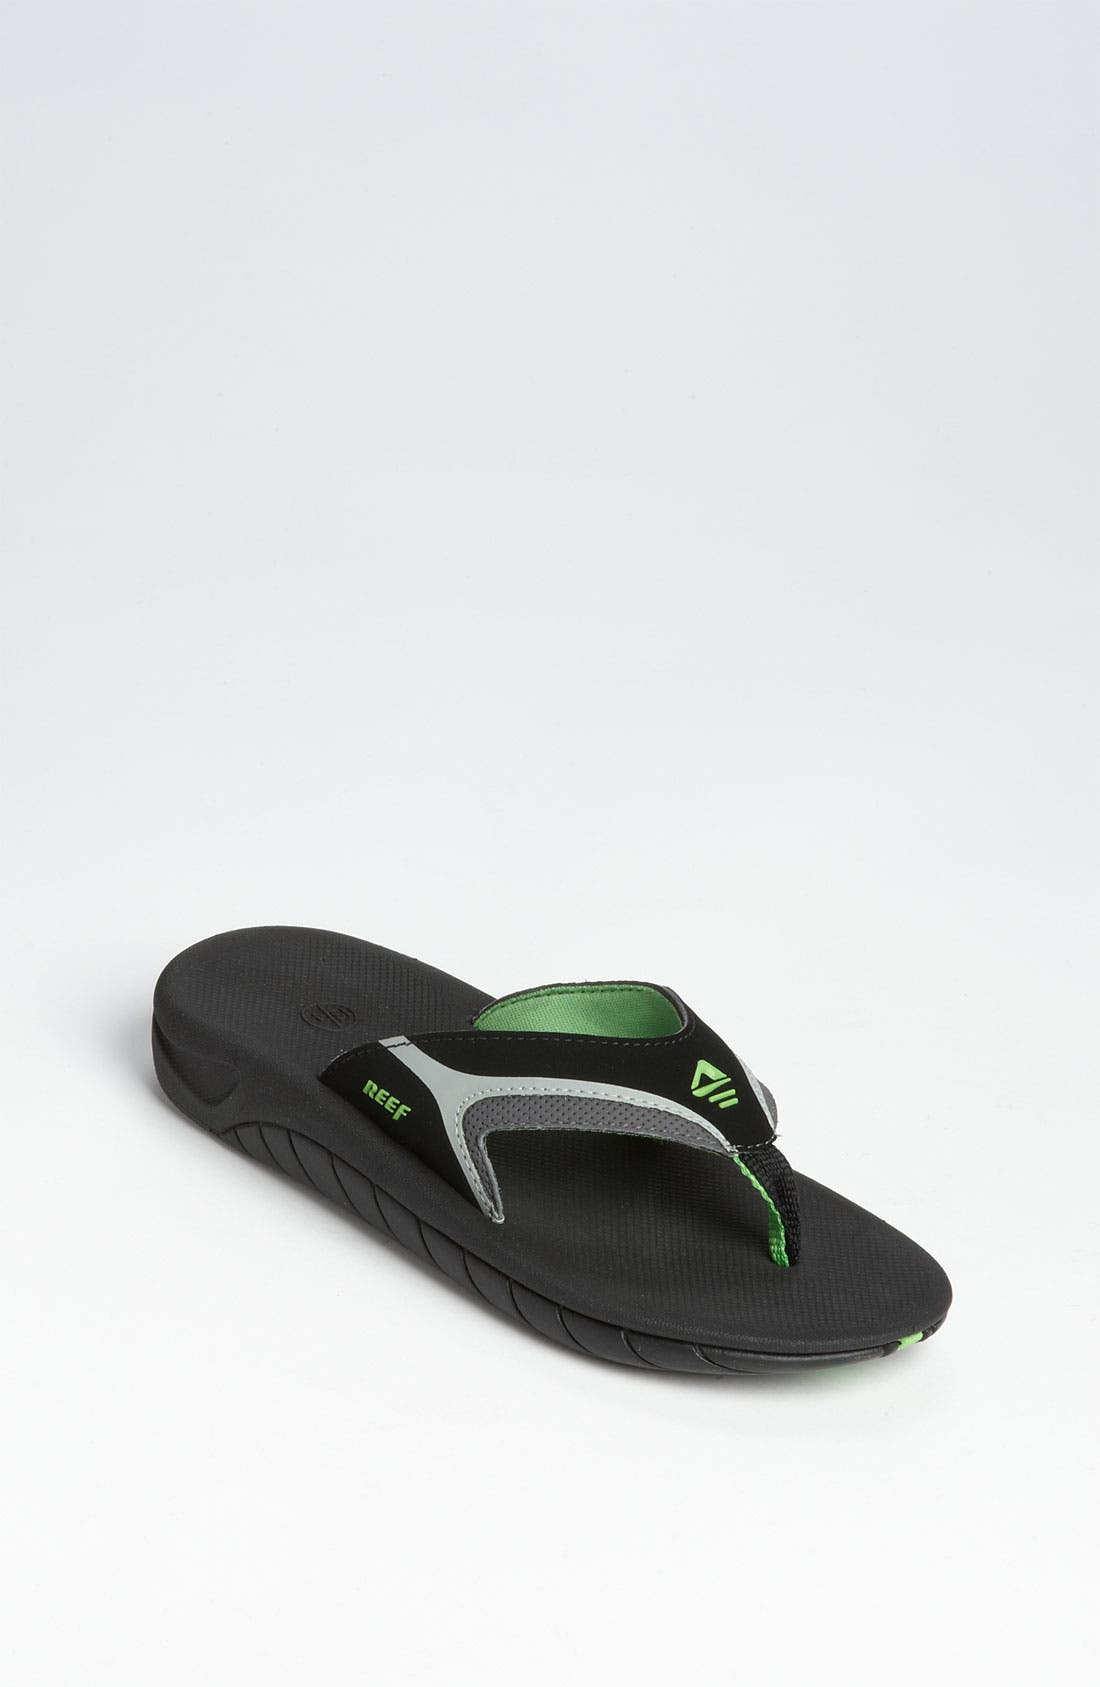 Main Image - Reef 'Slap 2' Flip Flop (Walker, Toddler, Little Kid & Big Kid)